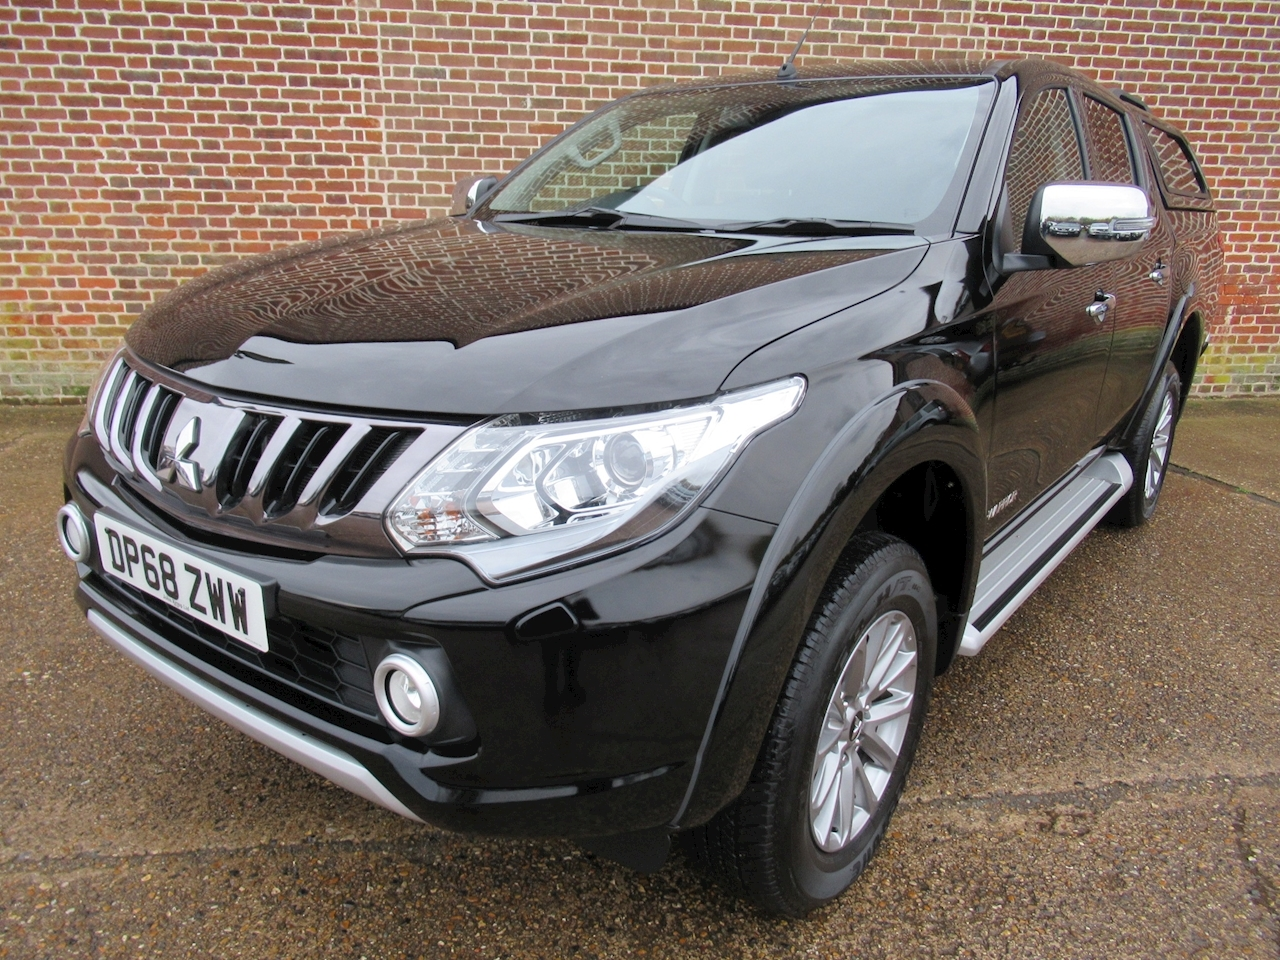 Mitsubishi L200 Di-D 4Wd Warrior Dcb 2.4 4dr Pick-Up Manual Diesel